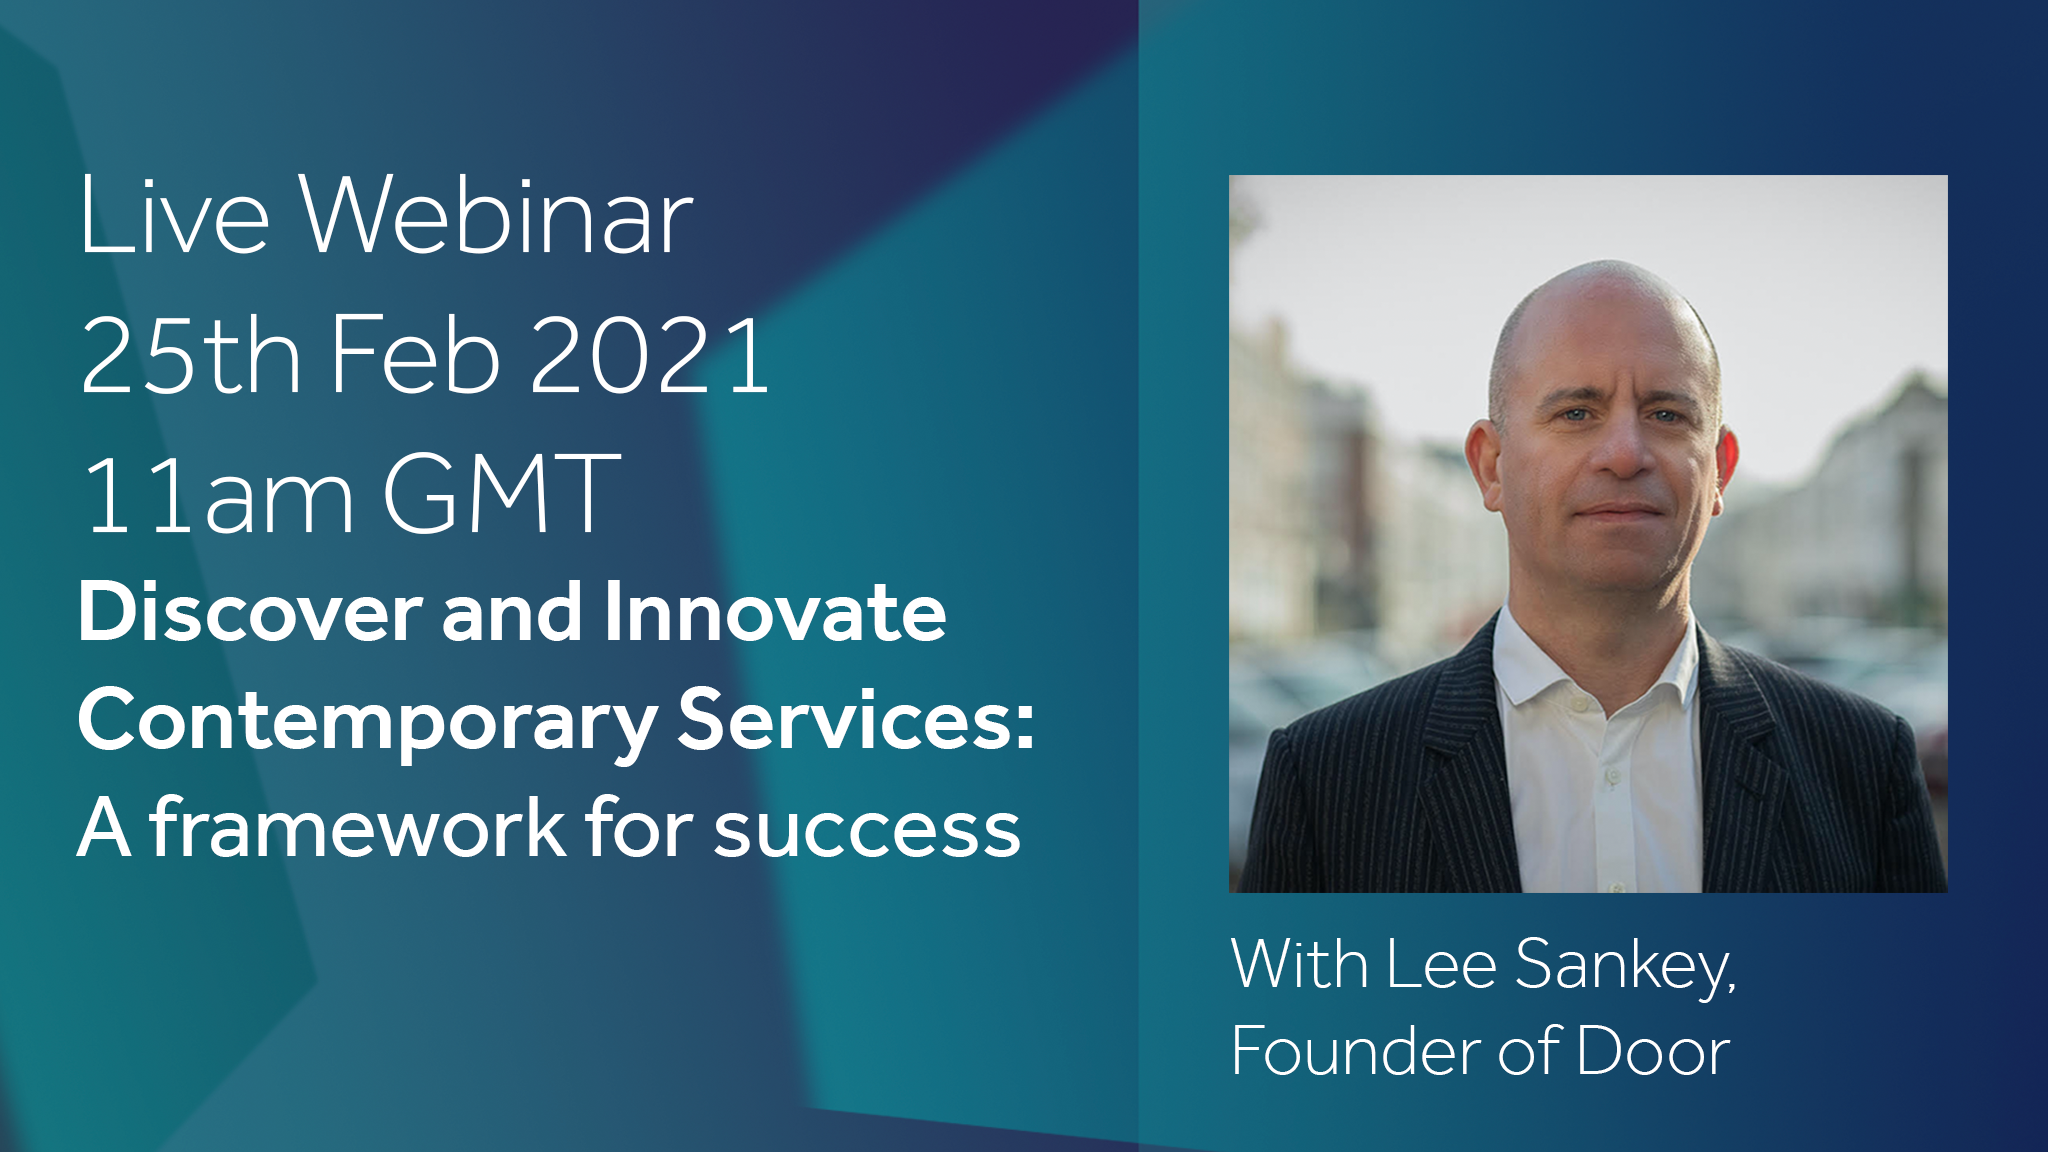 Live Webinar: Discovering and Innovating Contemporary Services